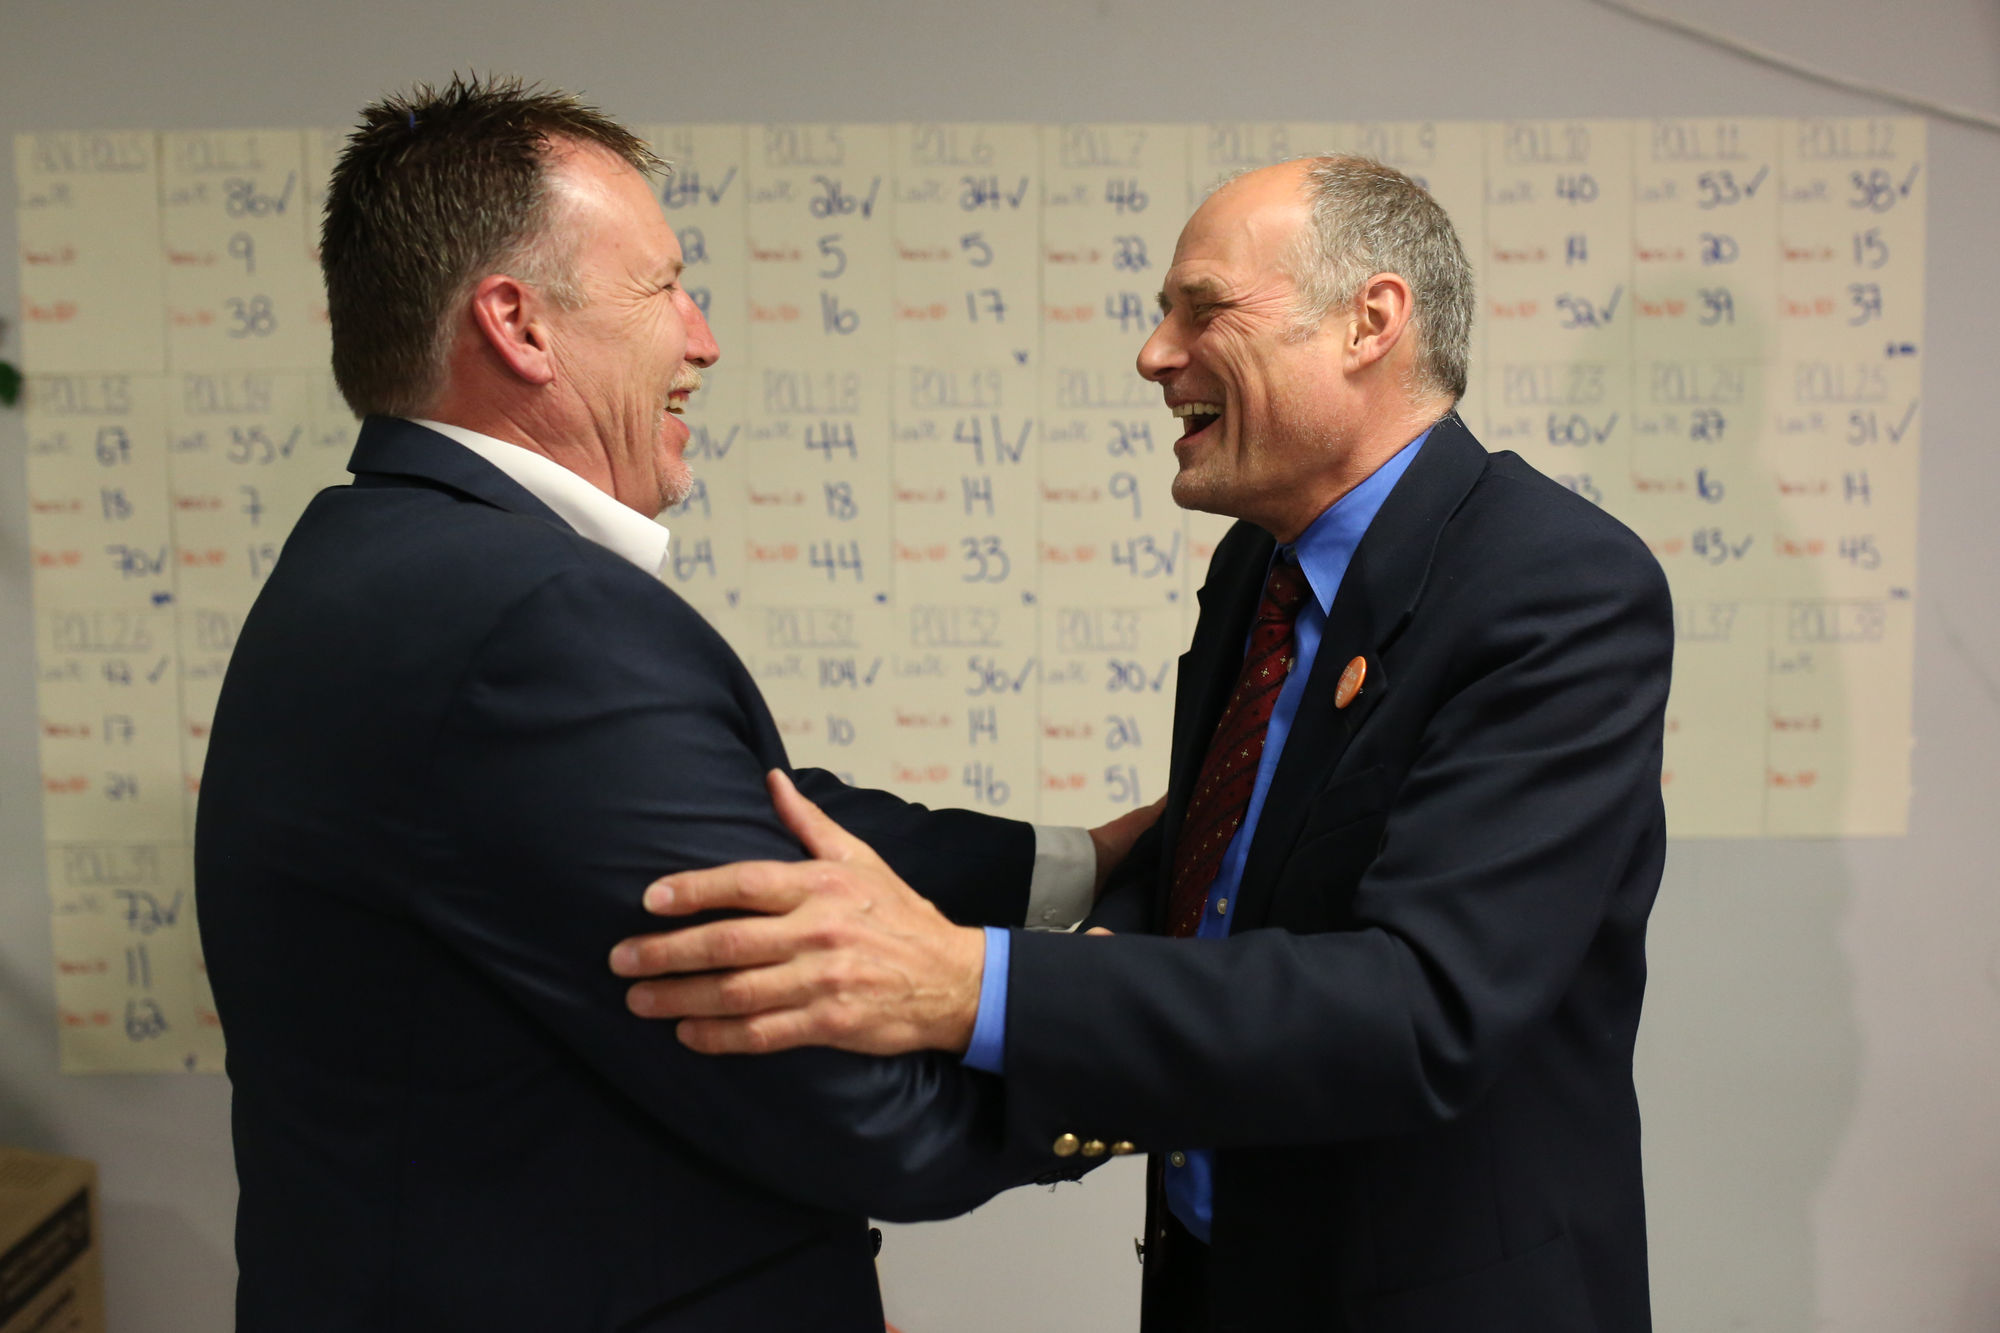 Former MLA Drew Caldwell congratulates MLA elect Len Isleifson following Tuesday's historic win. - Brandon Sun. 2016